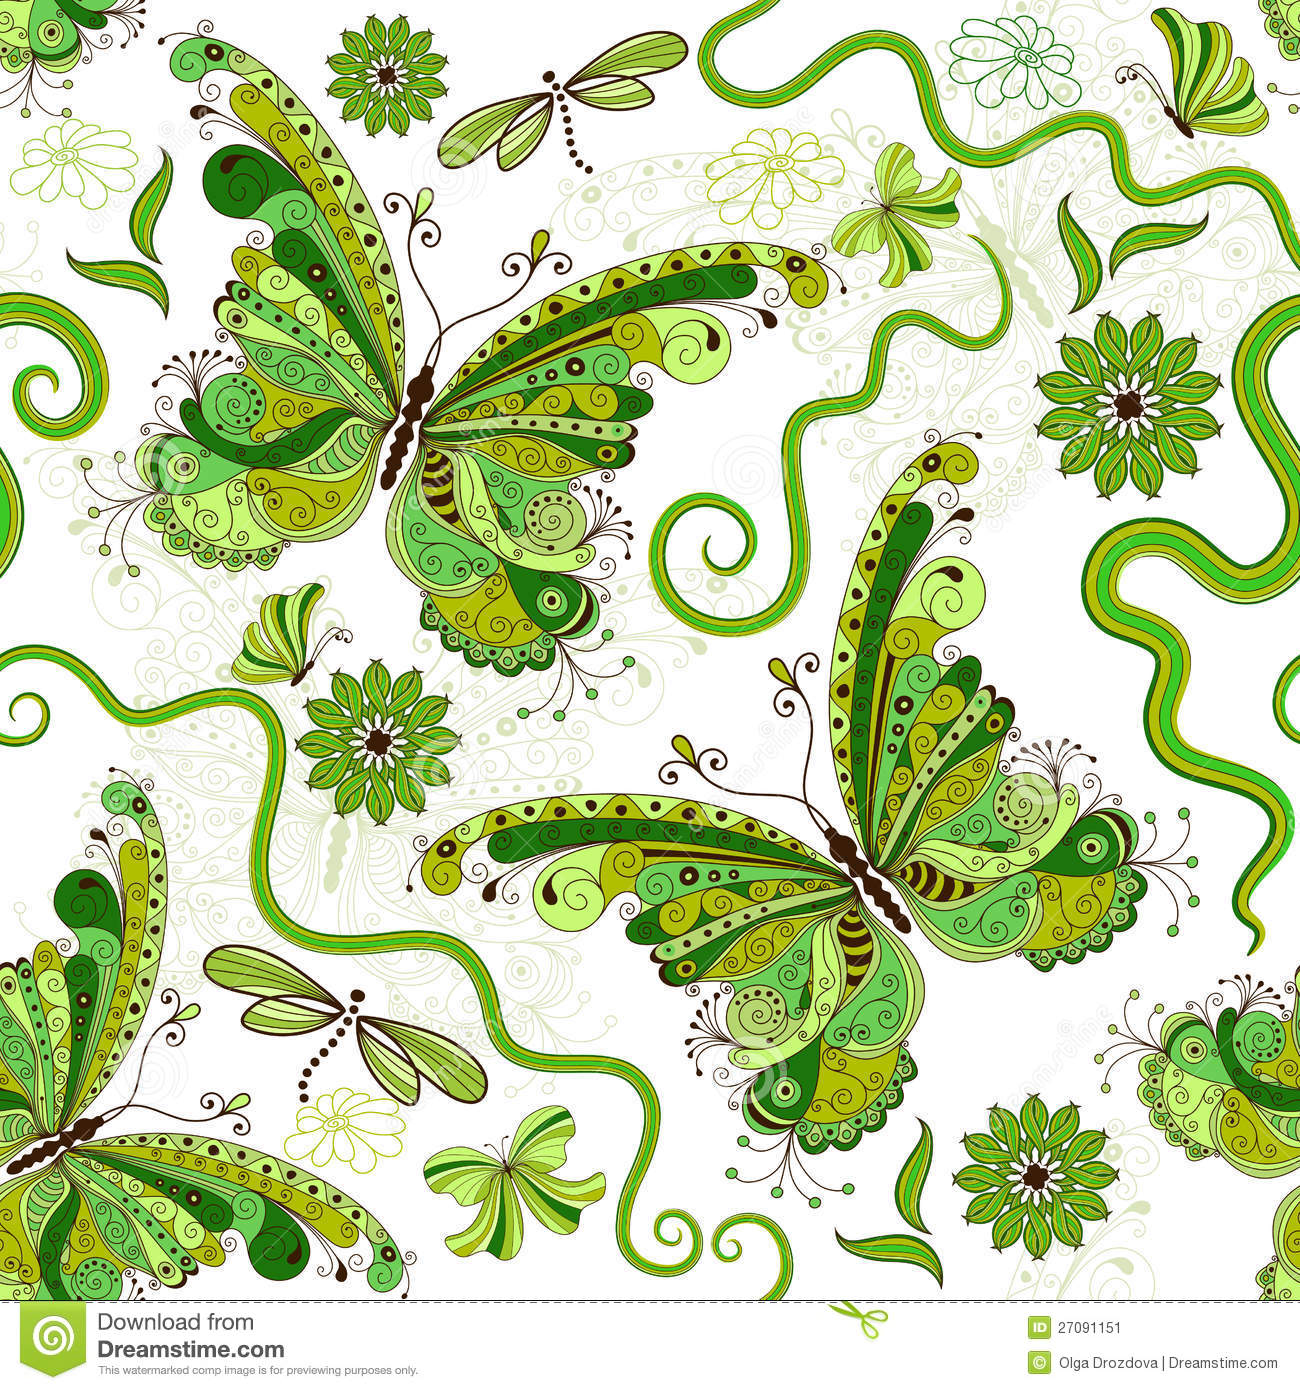 Green and white floral pattern - photo#1